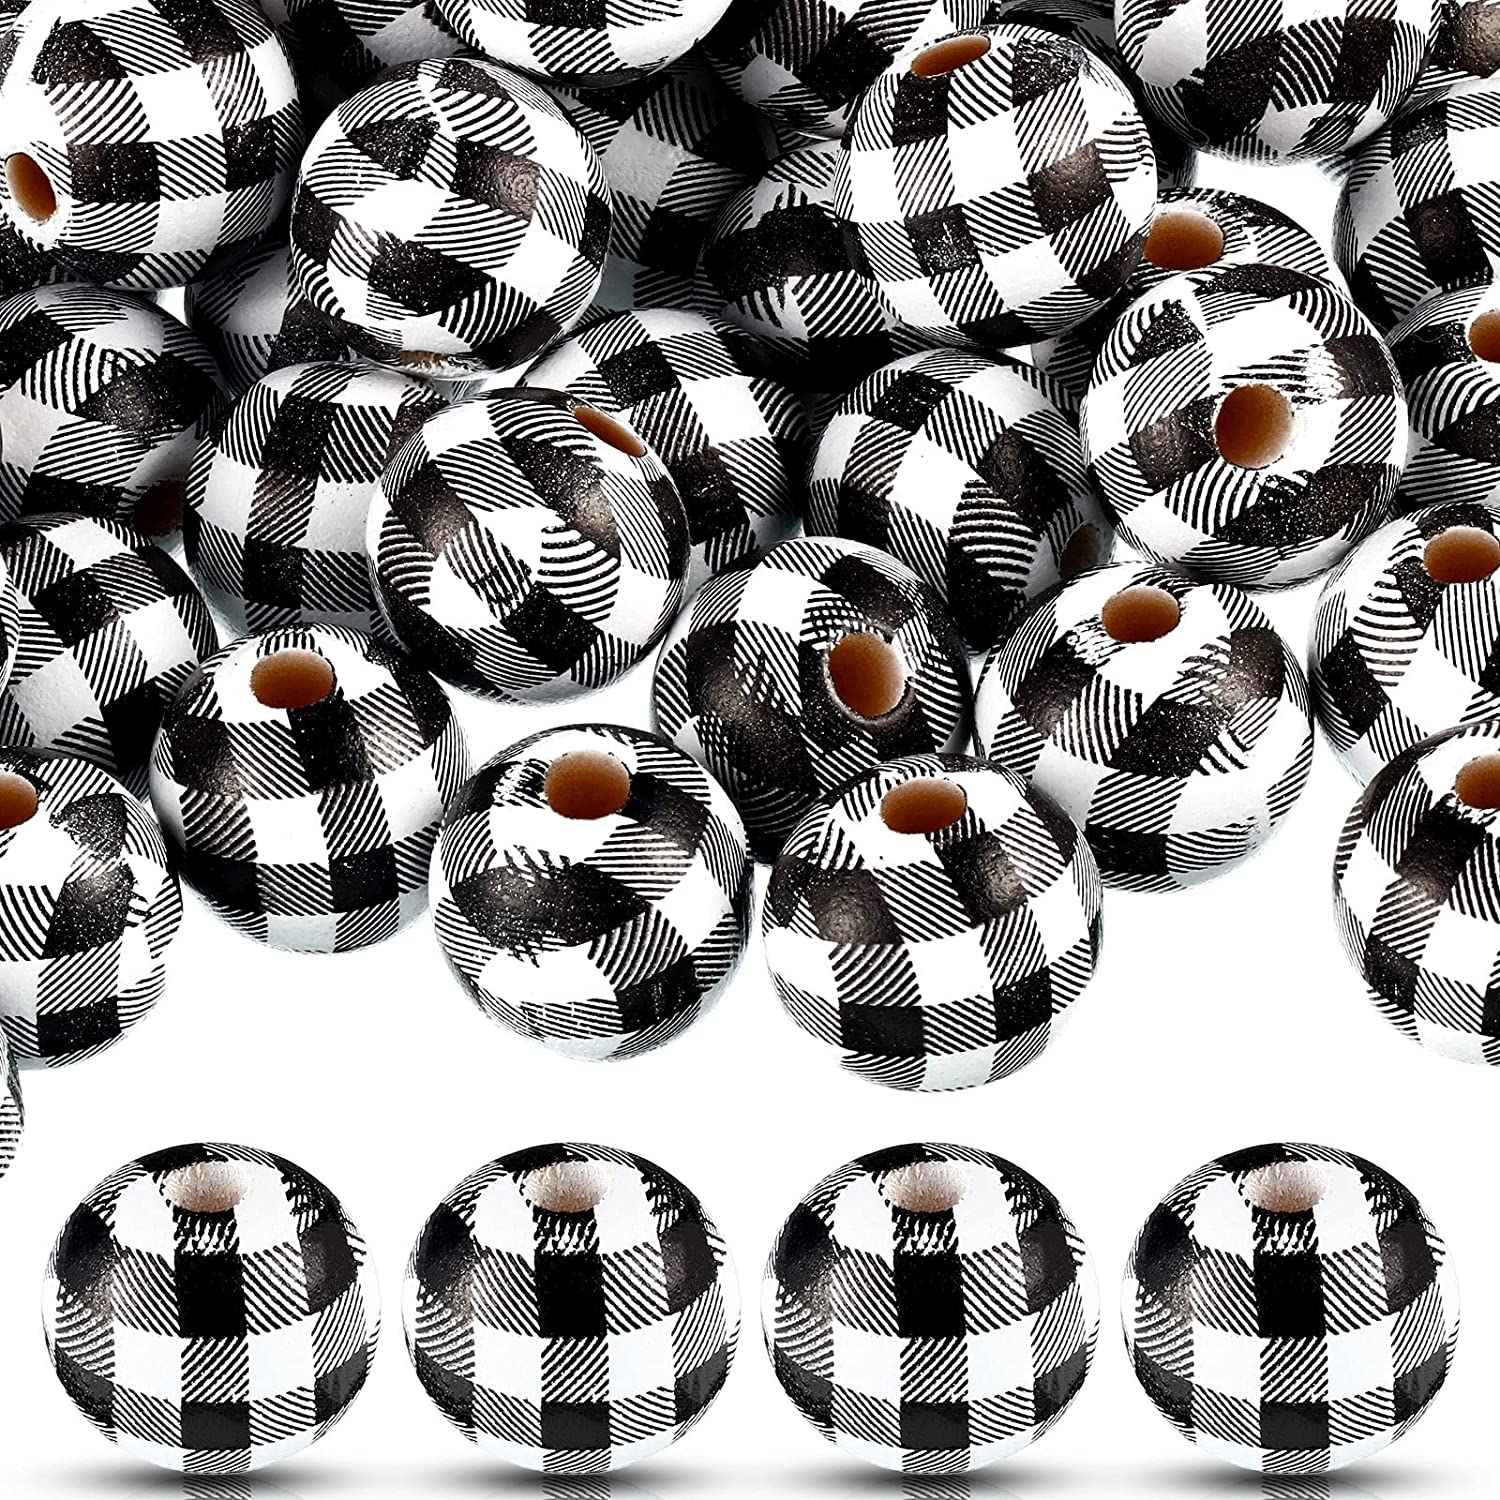 100 Pieces Plaid Wood Beads Buffalo Plaid Print Wooden Beads Rustic Farmhouse Wood Beads Natural Handmade Round Bead Polished Spacer Bead (Black and White, 1.6 cm)